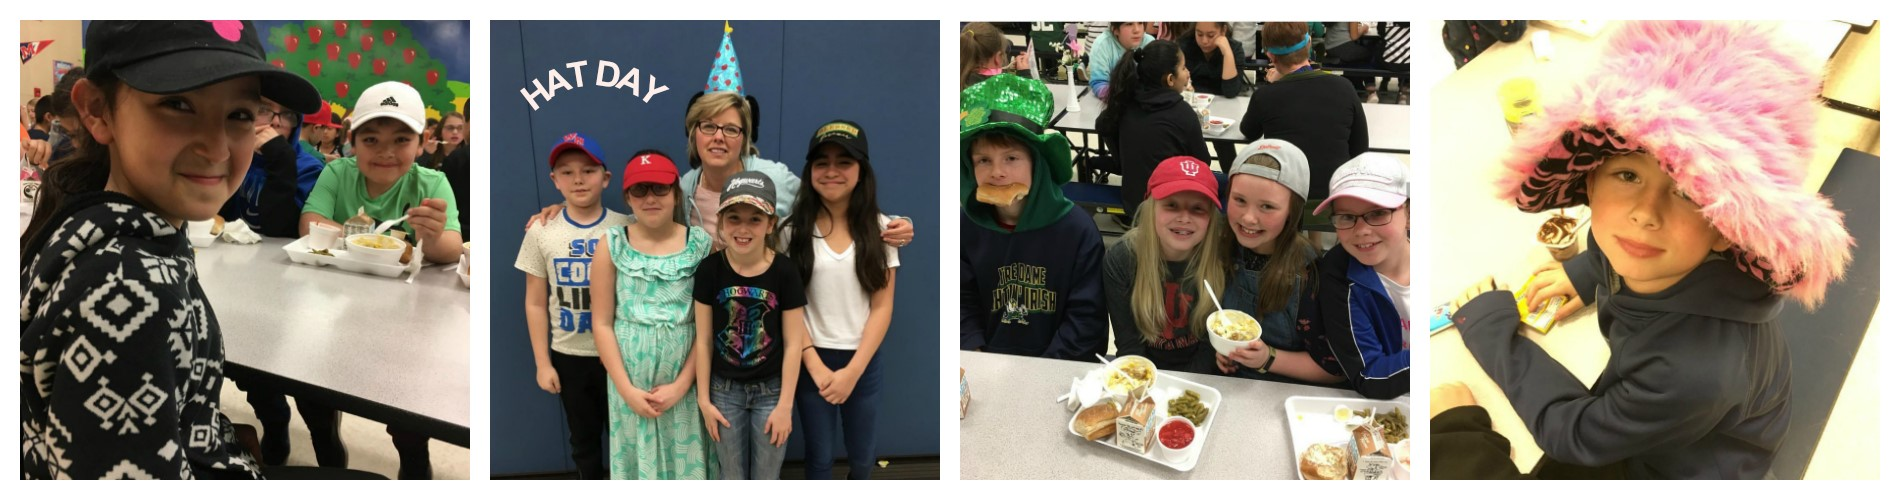 WNE students wear hats to support Kids Helping Kids.